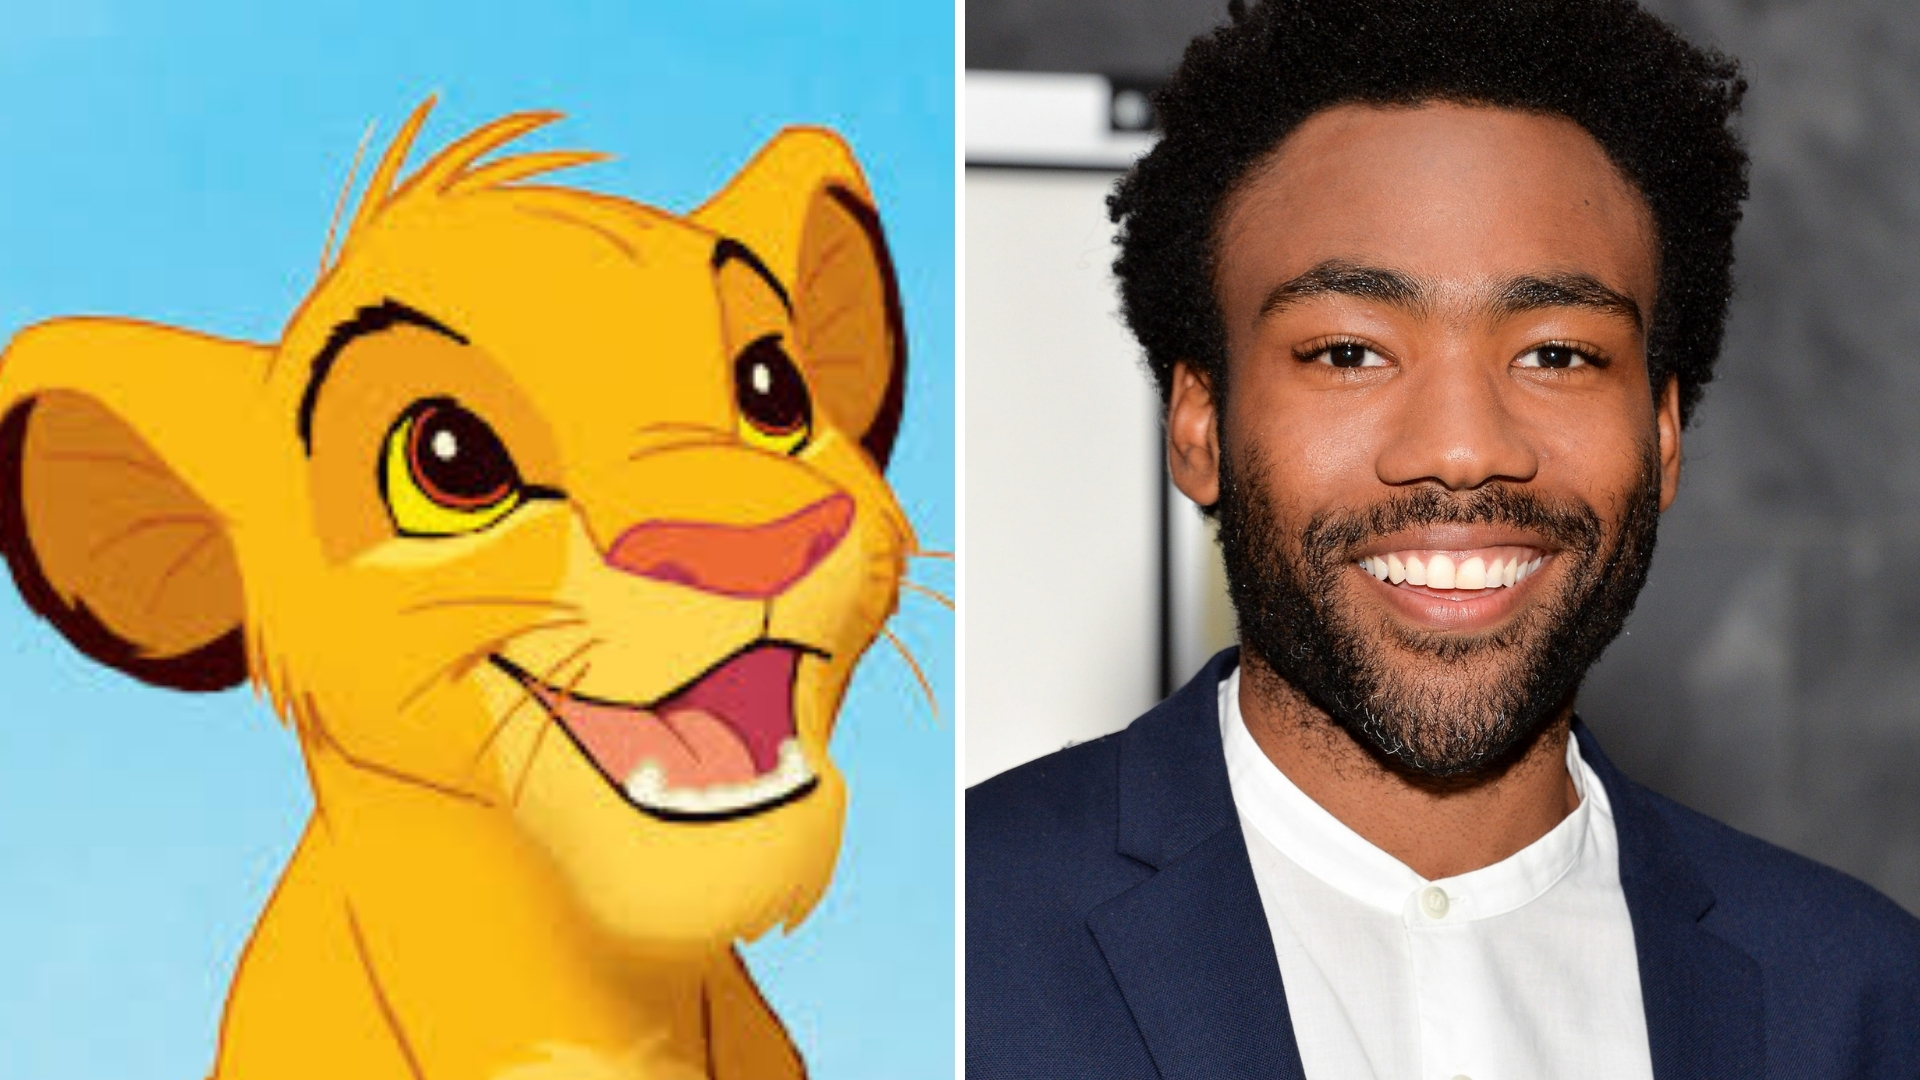 Watch the First Teaser Trailer for the Live-Action The Lion King!